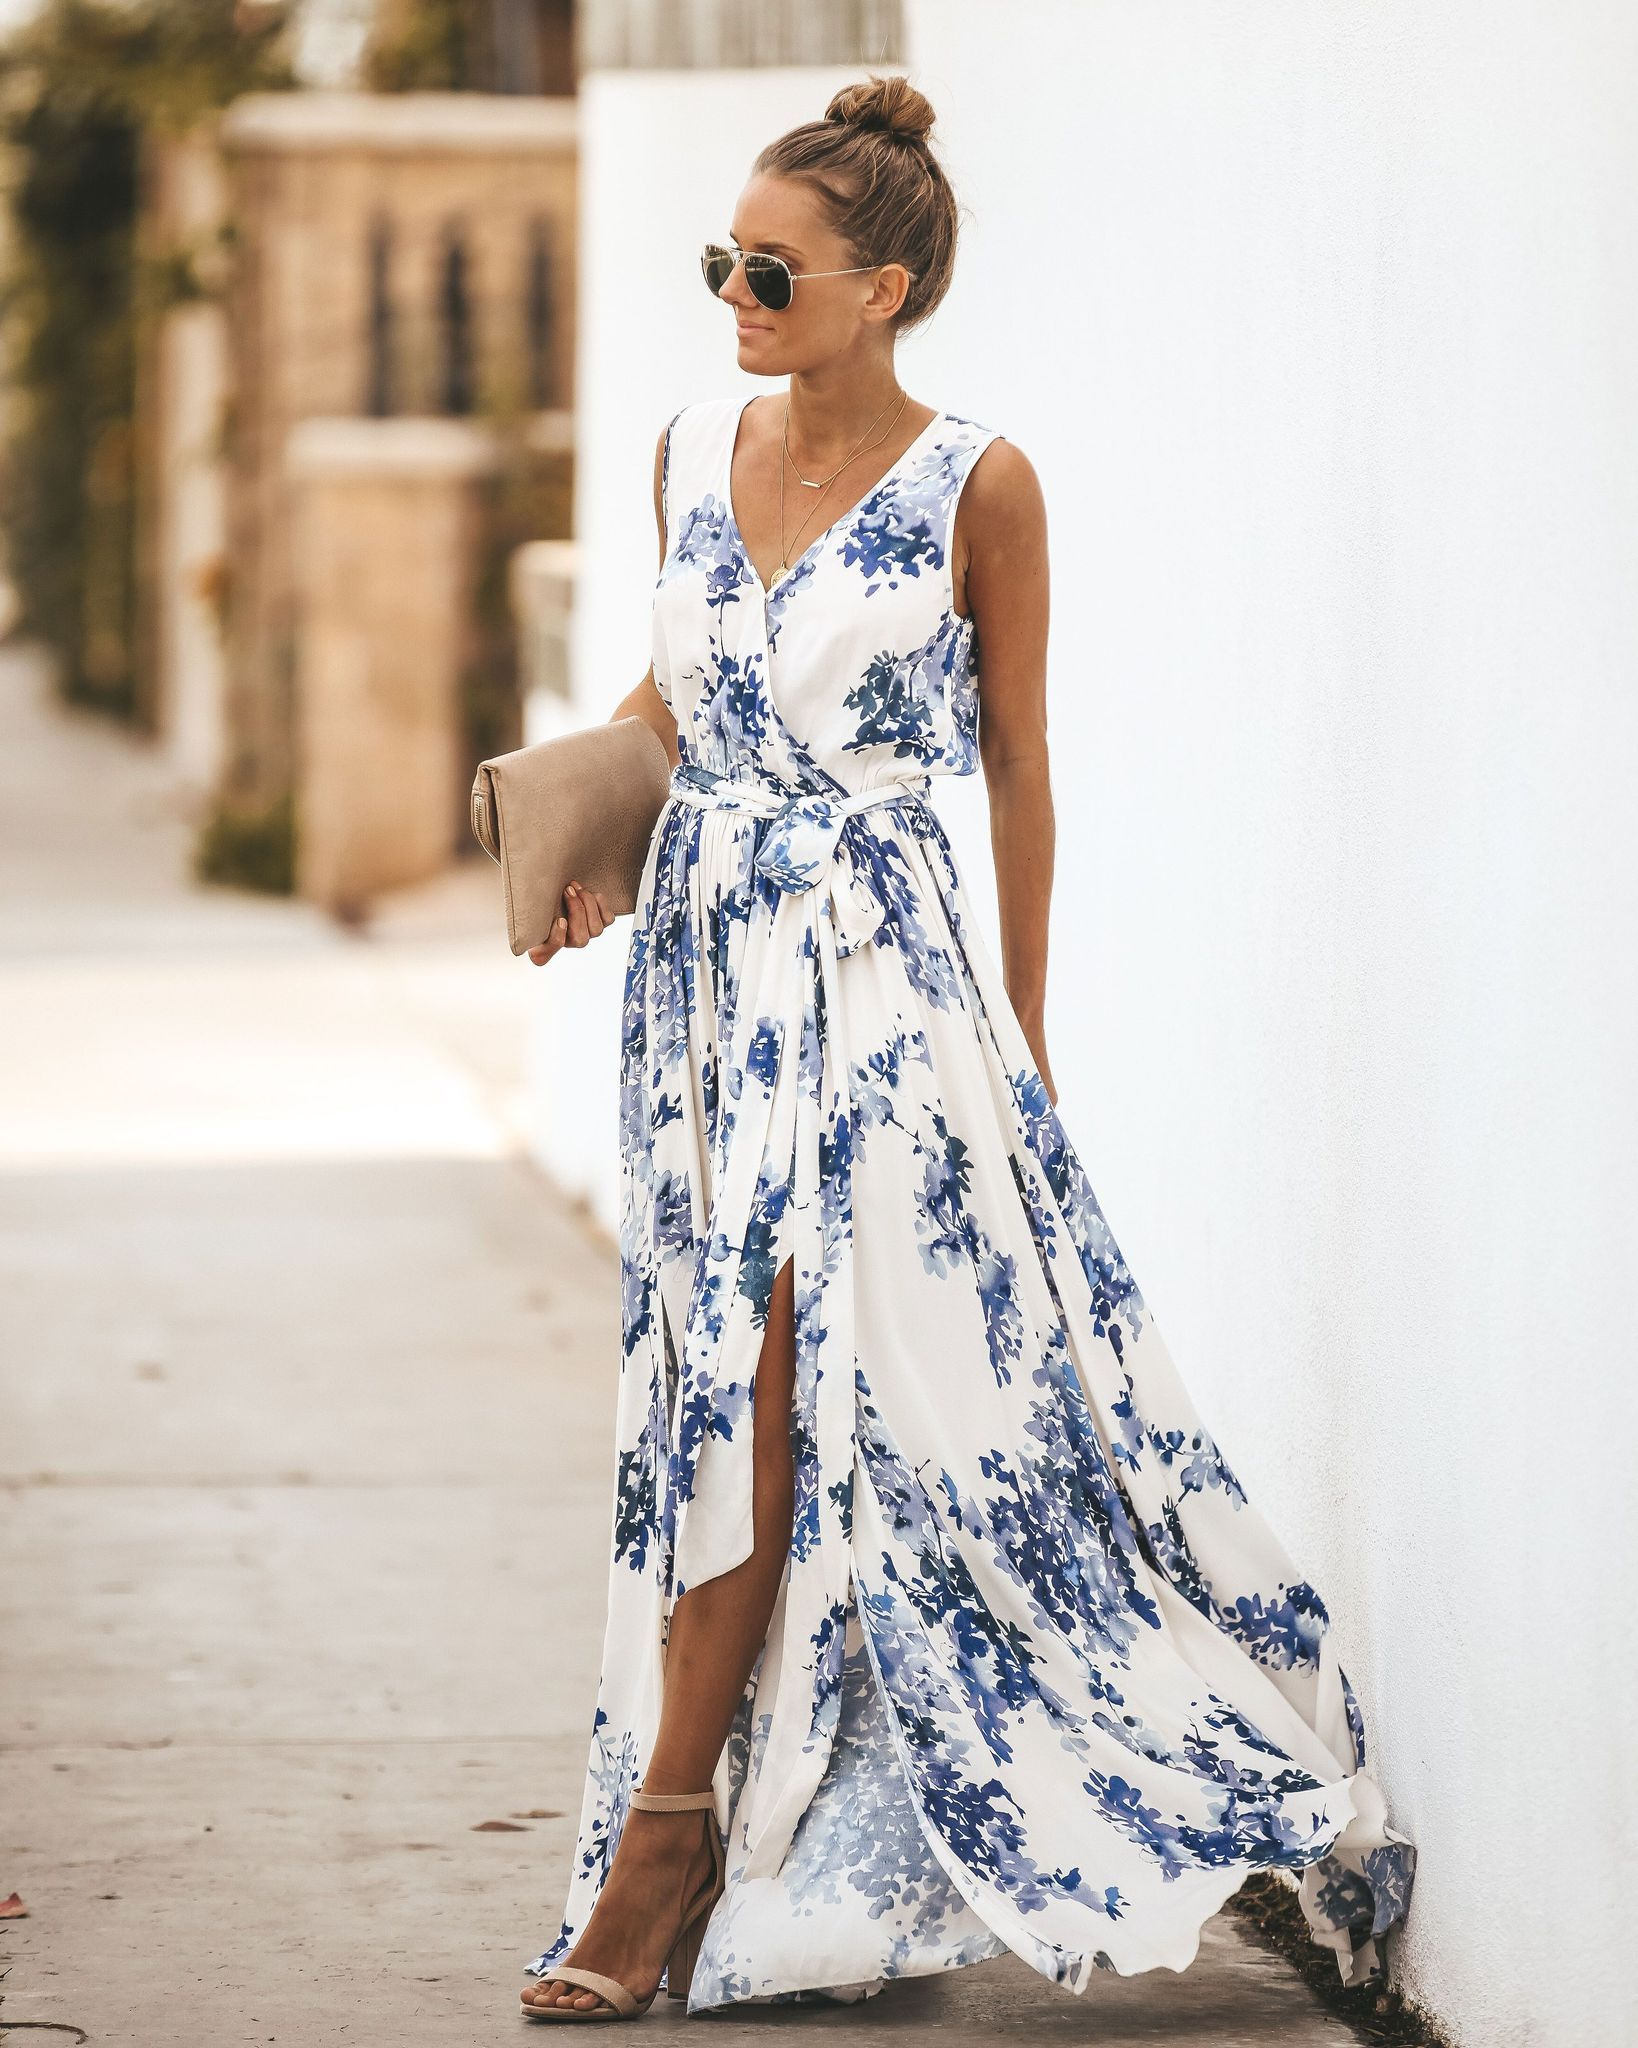 e76ca8990b Off White Floral Sleeveless Diana Maxi Dress in 2019 | Dress ...